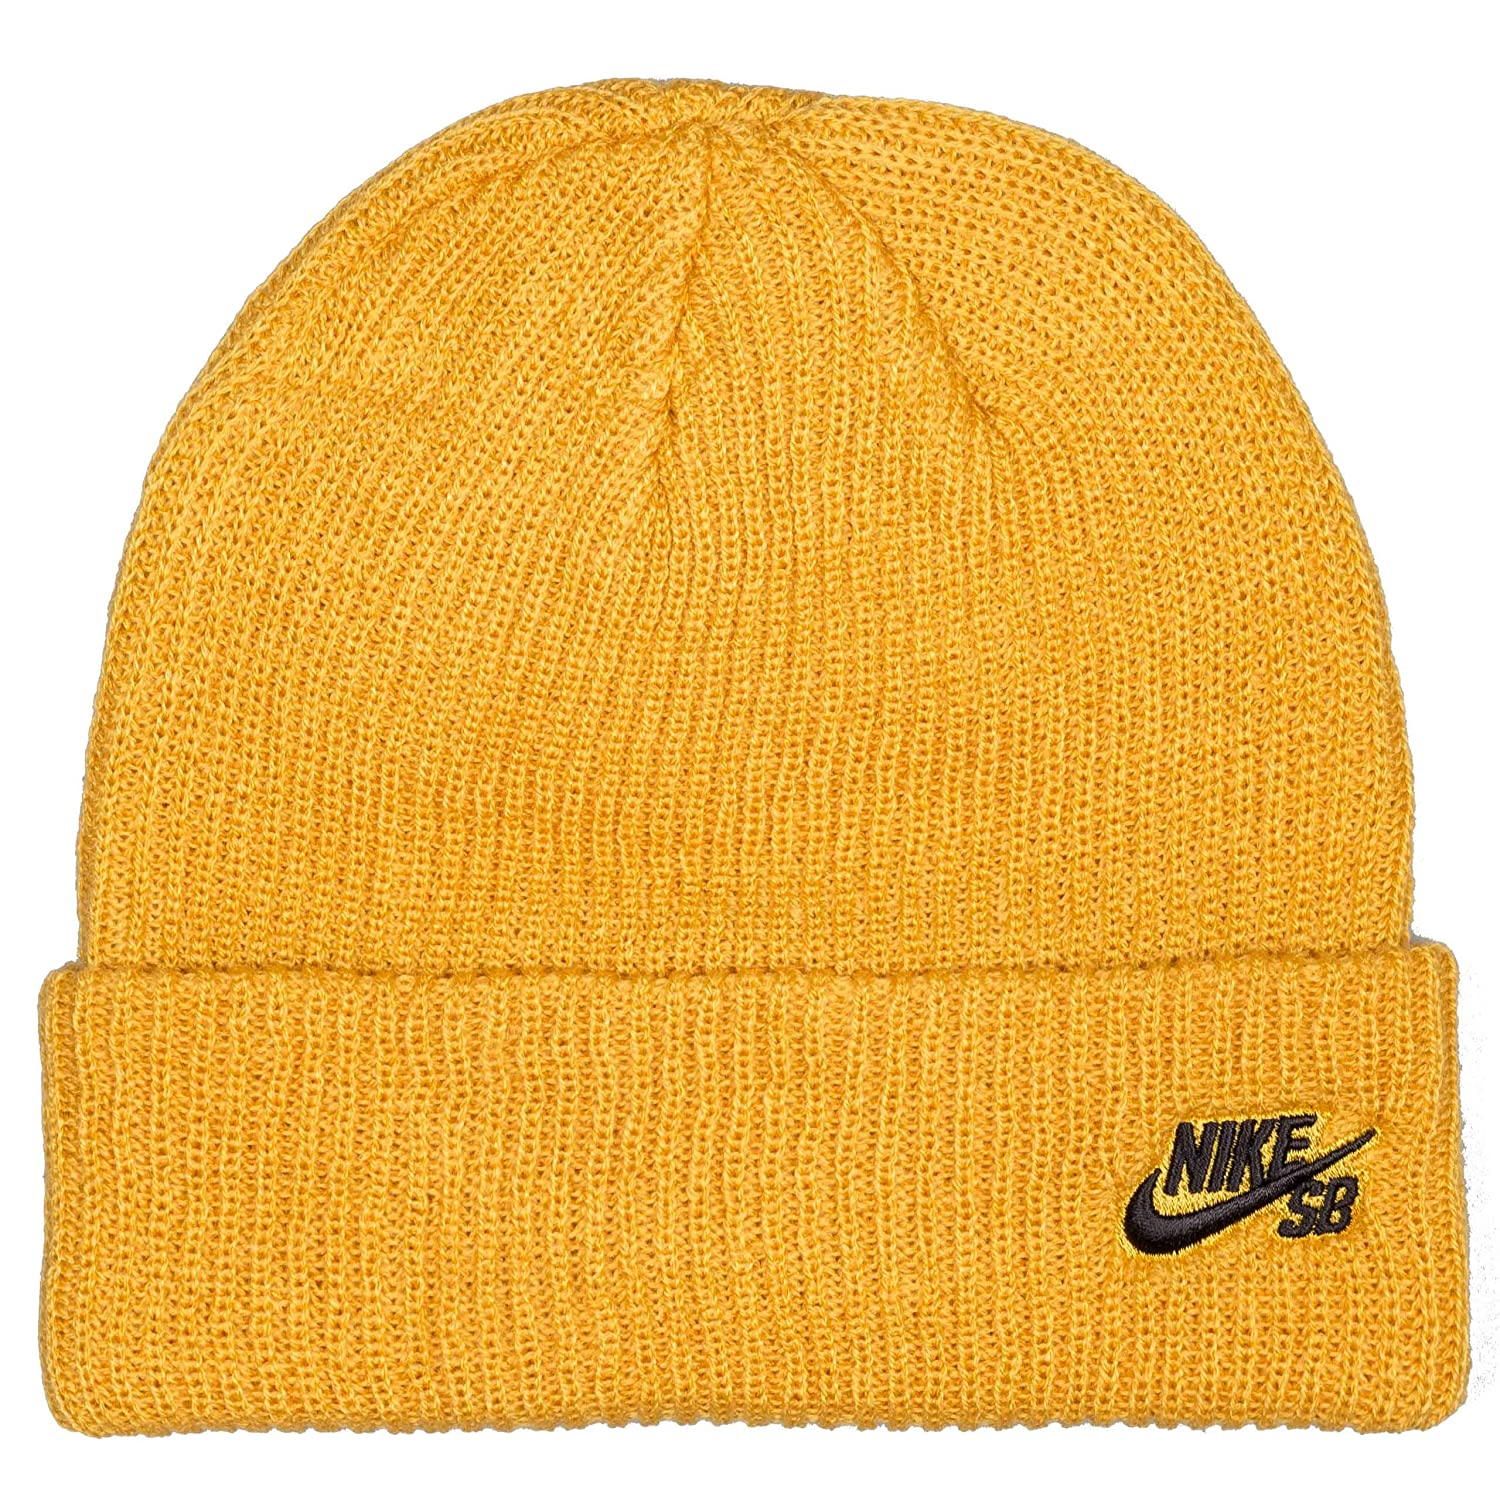 fd8a8489 Nike SB Fisherman' Beanie. Mineral Gold/Black.: Amazon.co.uk: Clothing